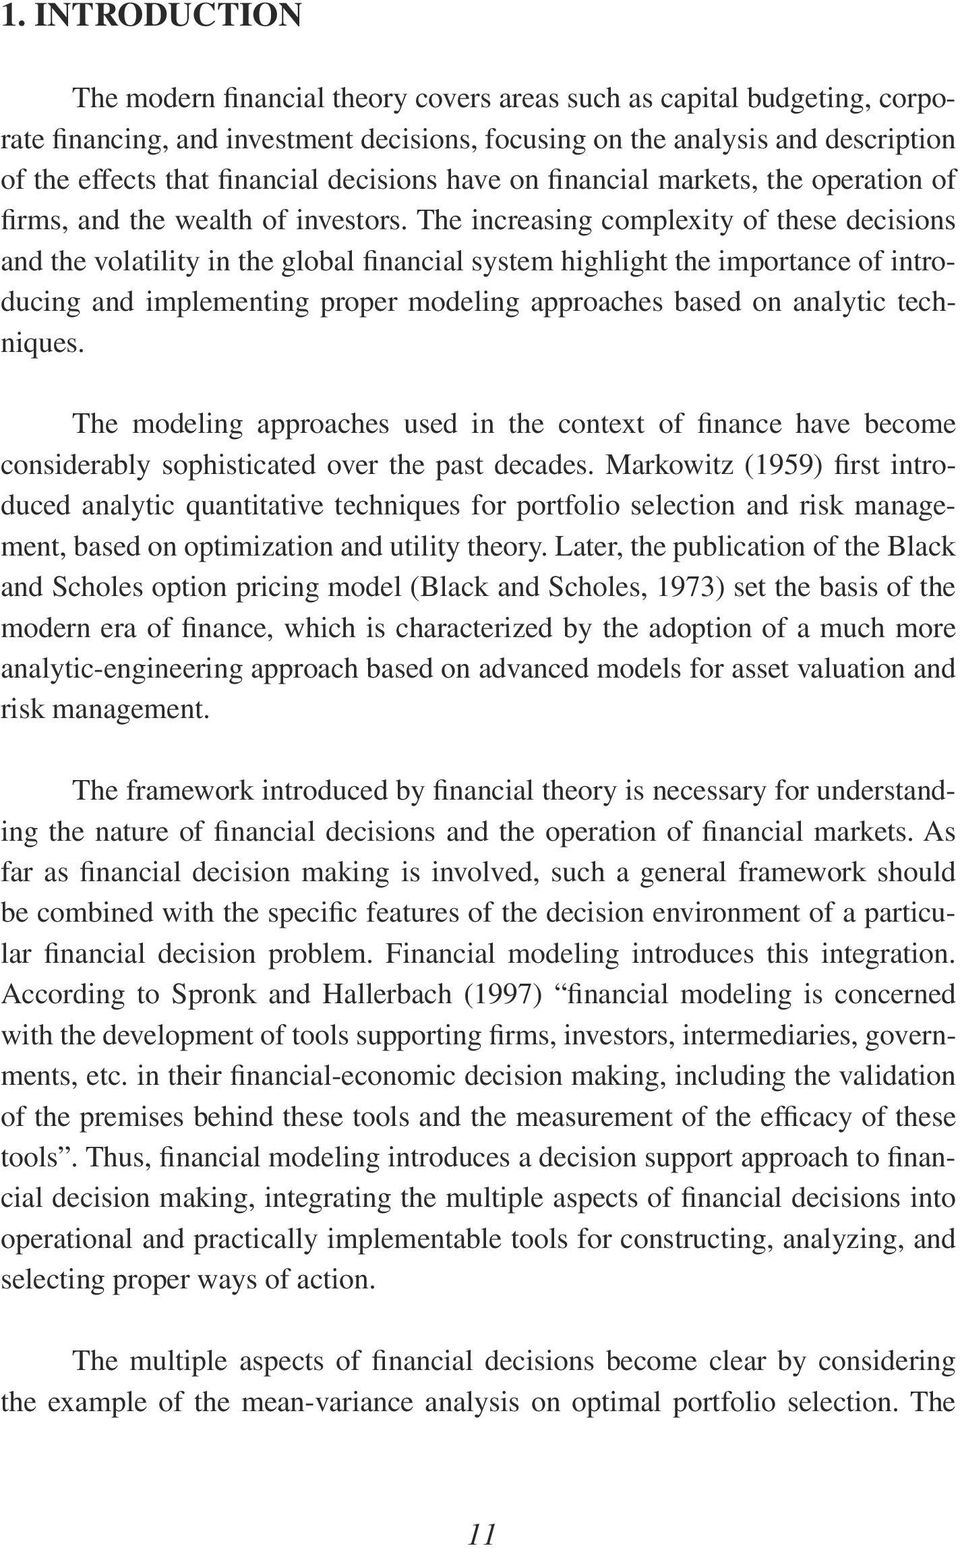 The increasing complexity of these decisions and the volatility in the global financial system highlight the importance of introducing and implementing proper modeling approaches based on analytic